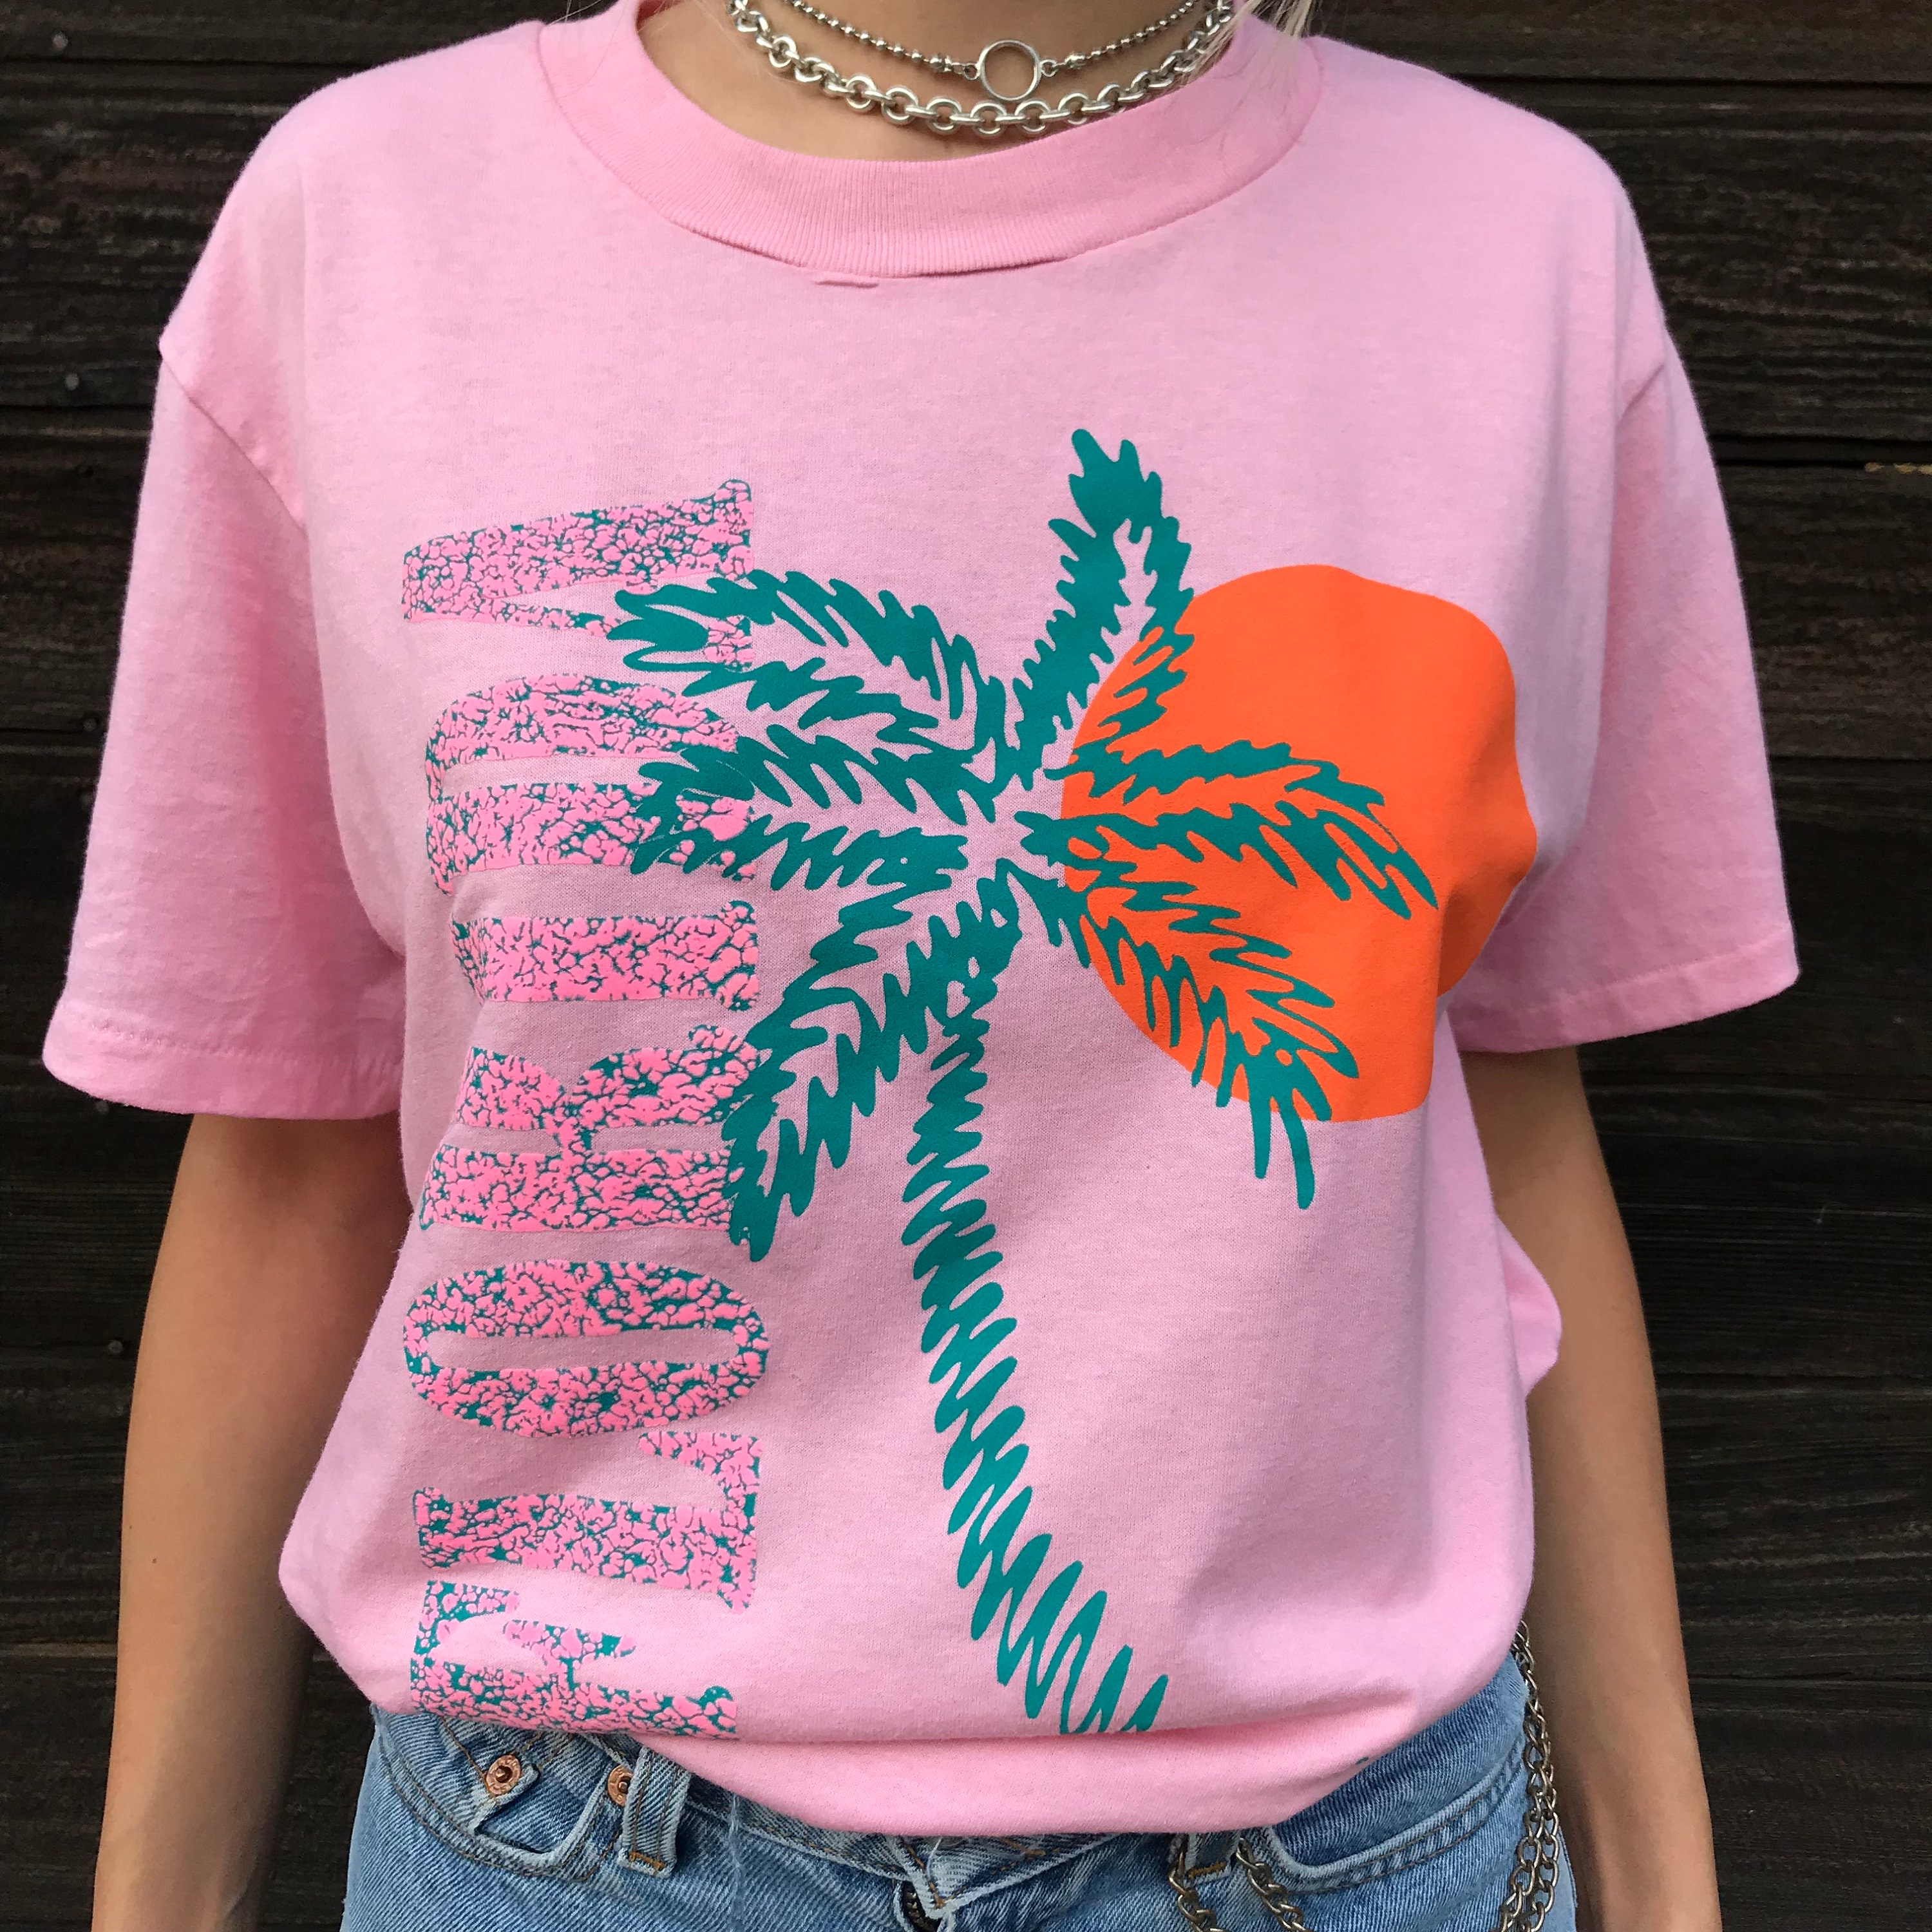 c17a98c42 Shoppable tips Source · FLORIDA T Shirt pink 90s vintage puff paint graphic  tee worn in